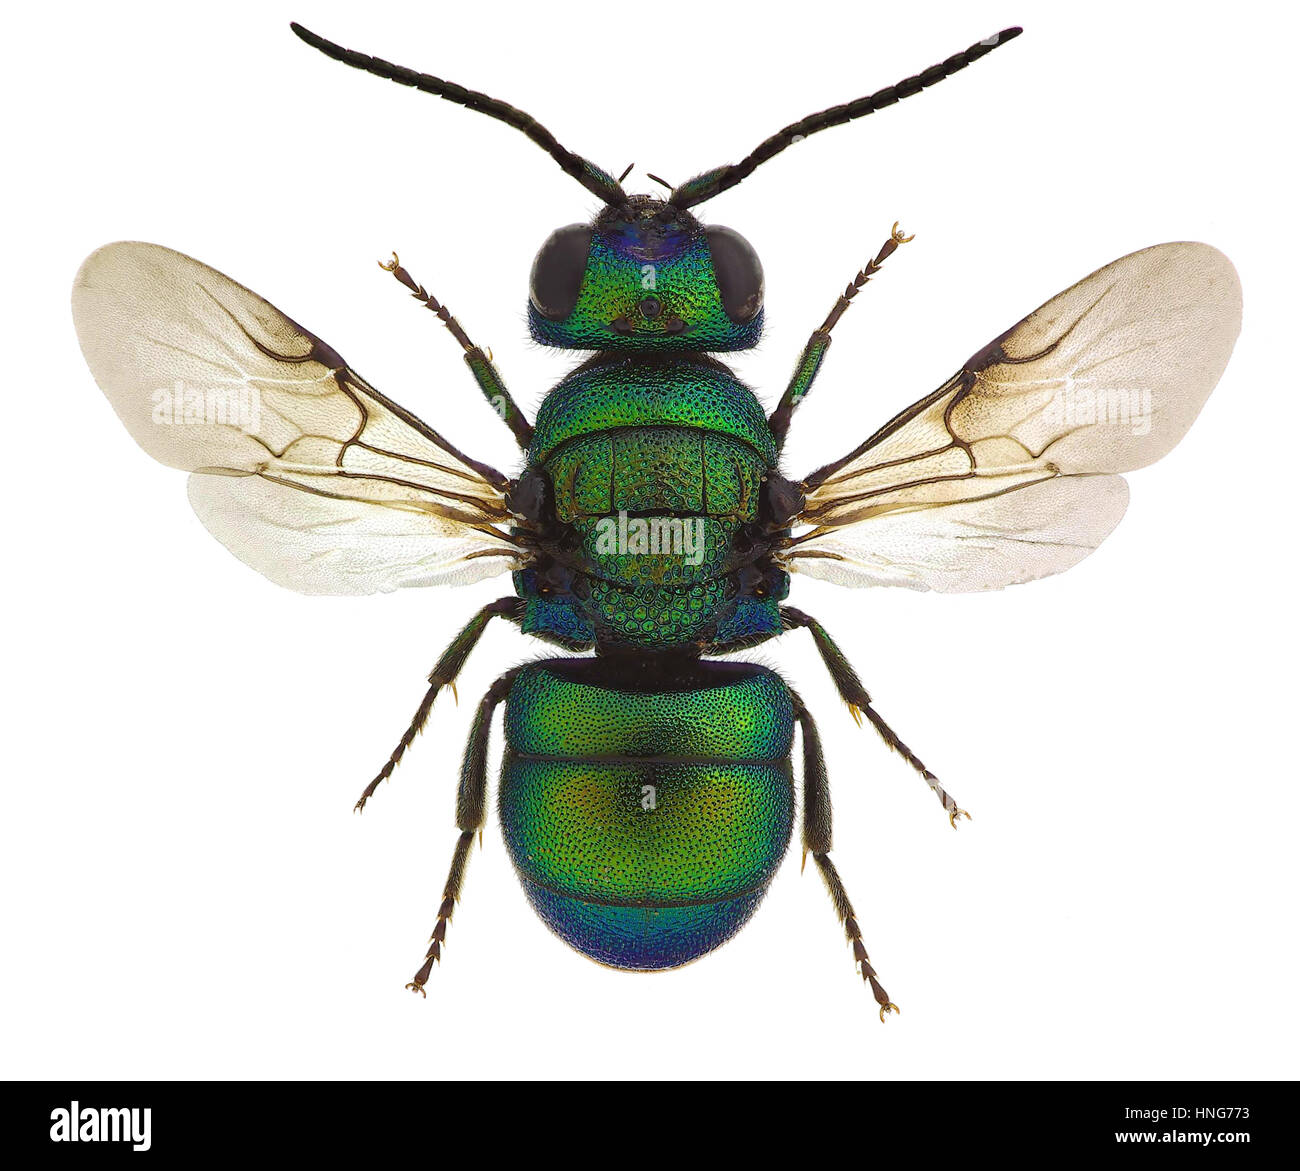 Holopyga fervida, a cuckoo wasp from Europe - Stock Image